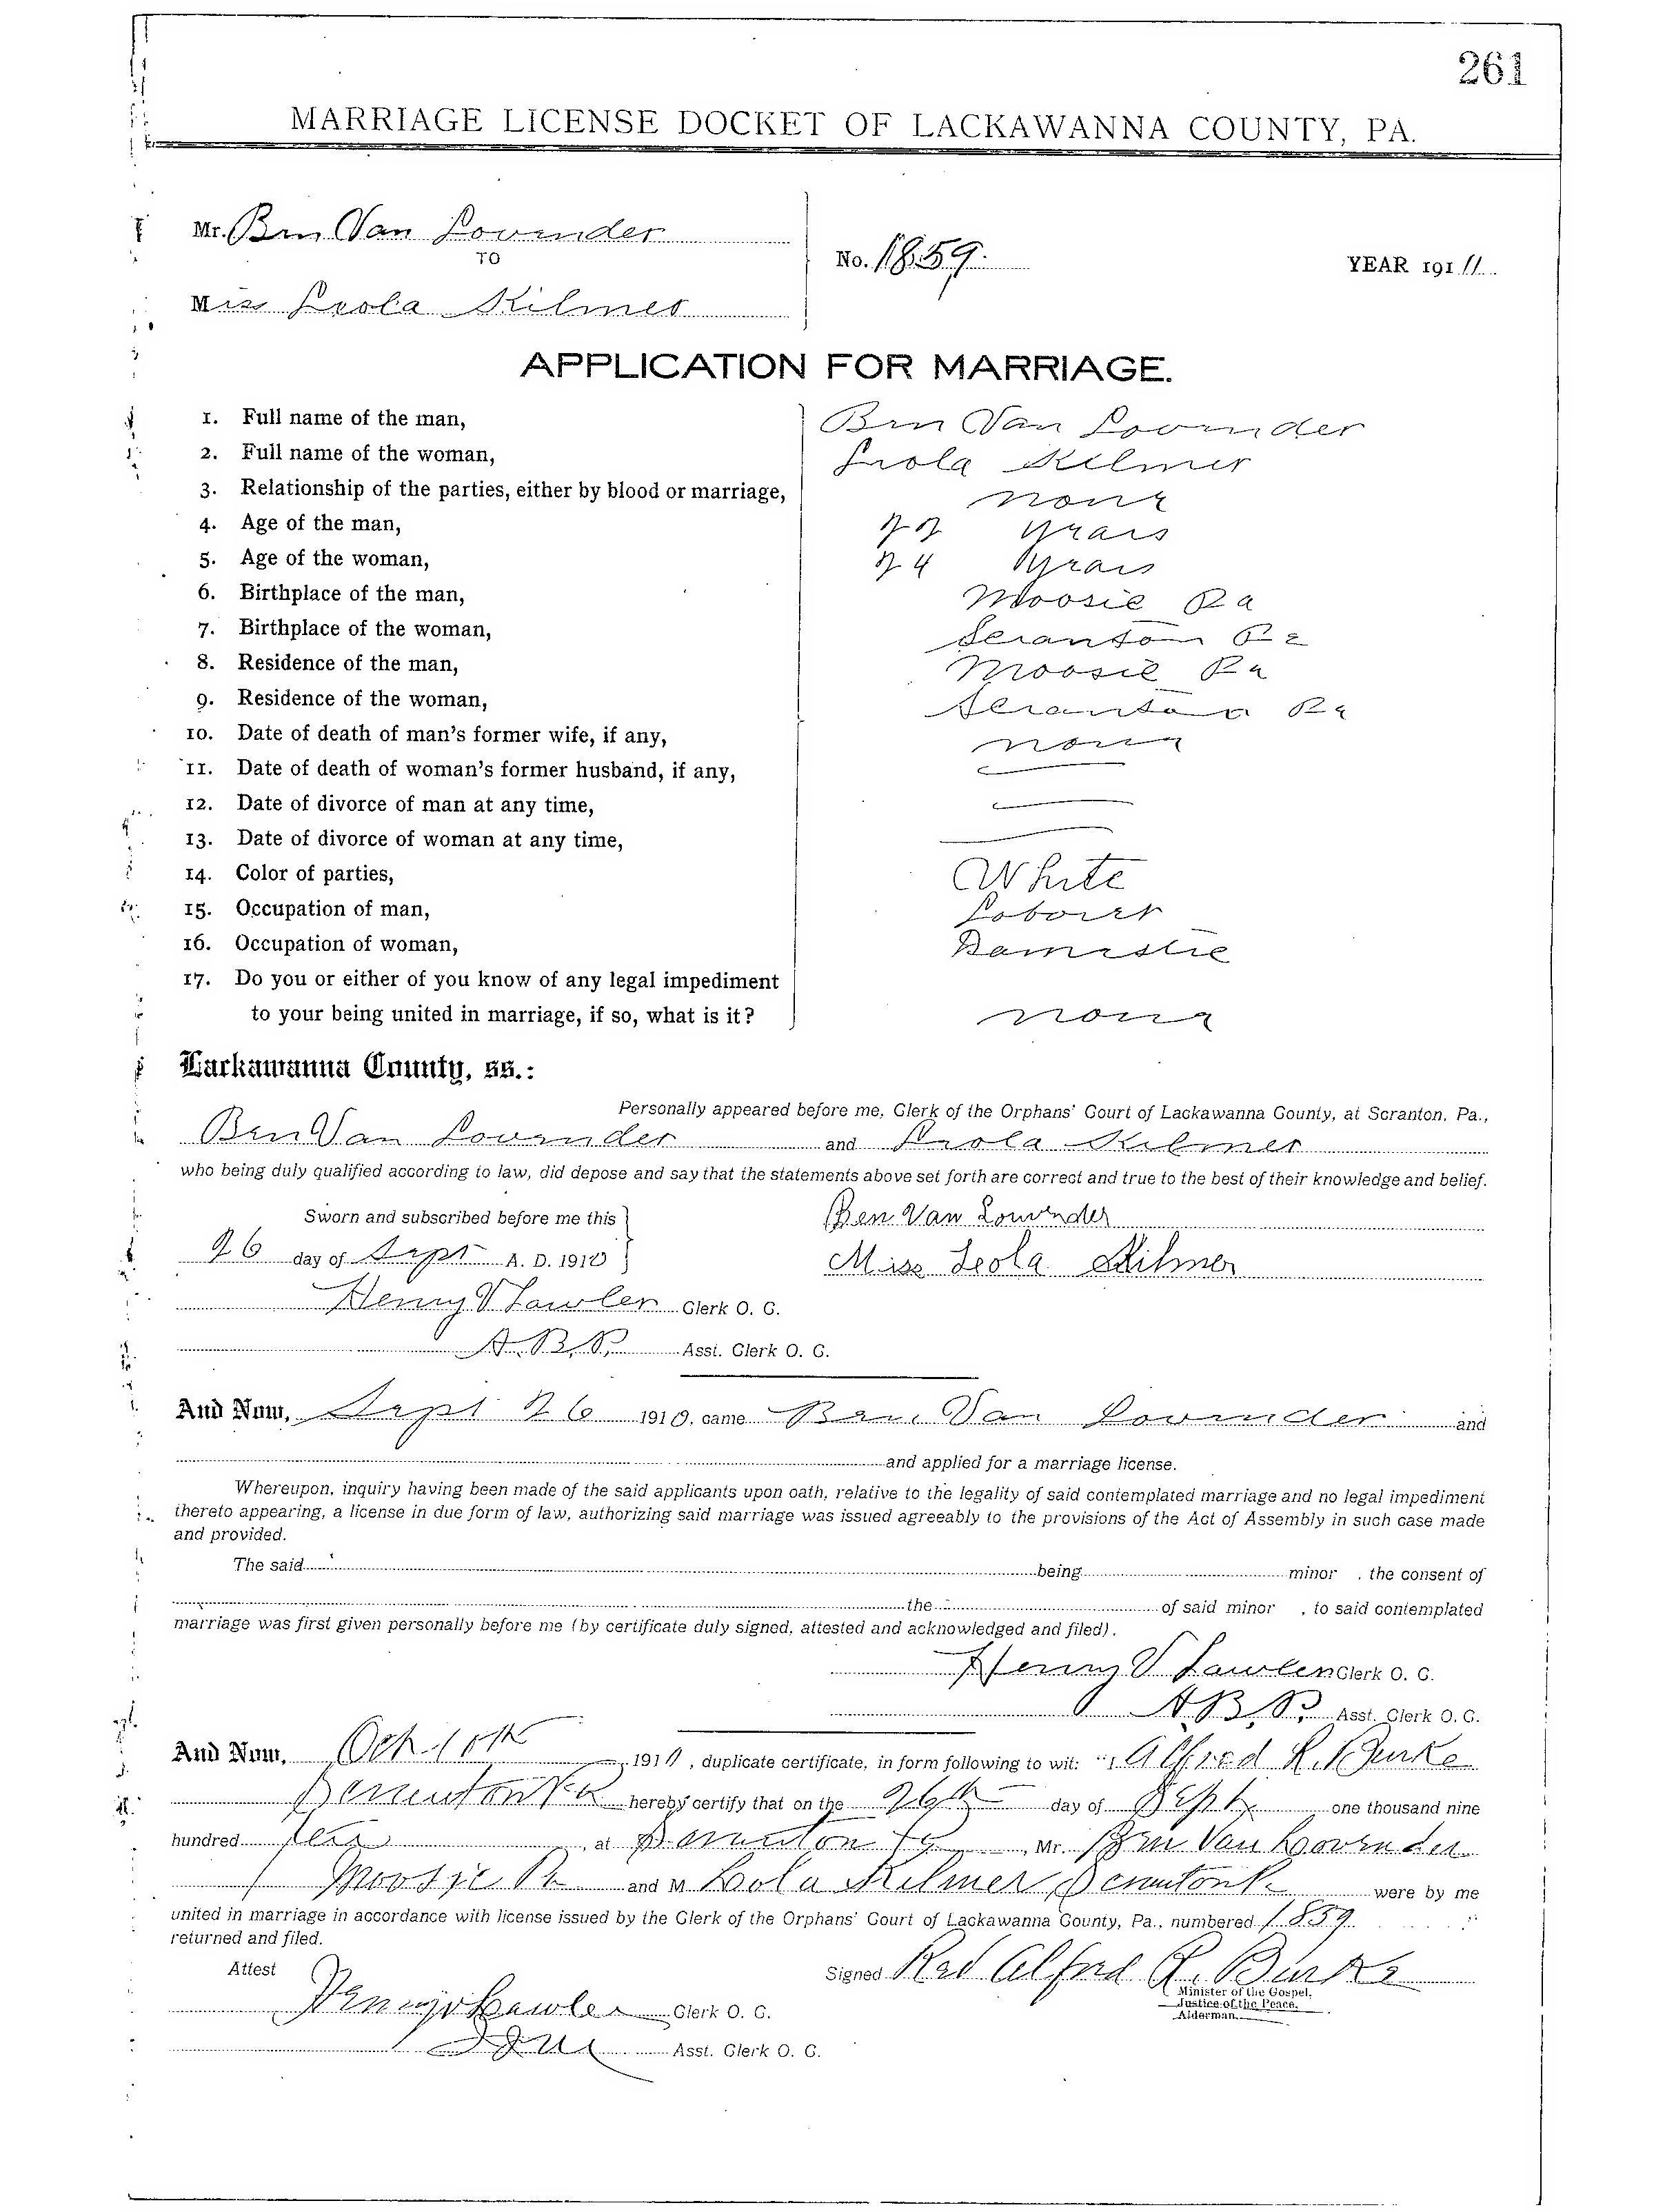 Lackawanna County Marriage License Index Page 1